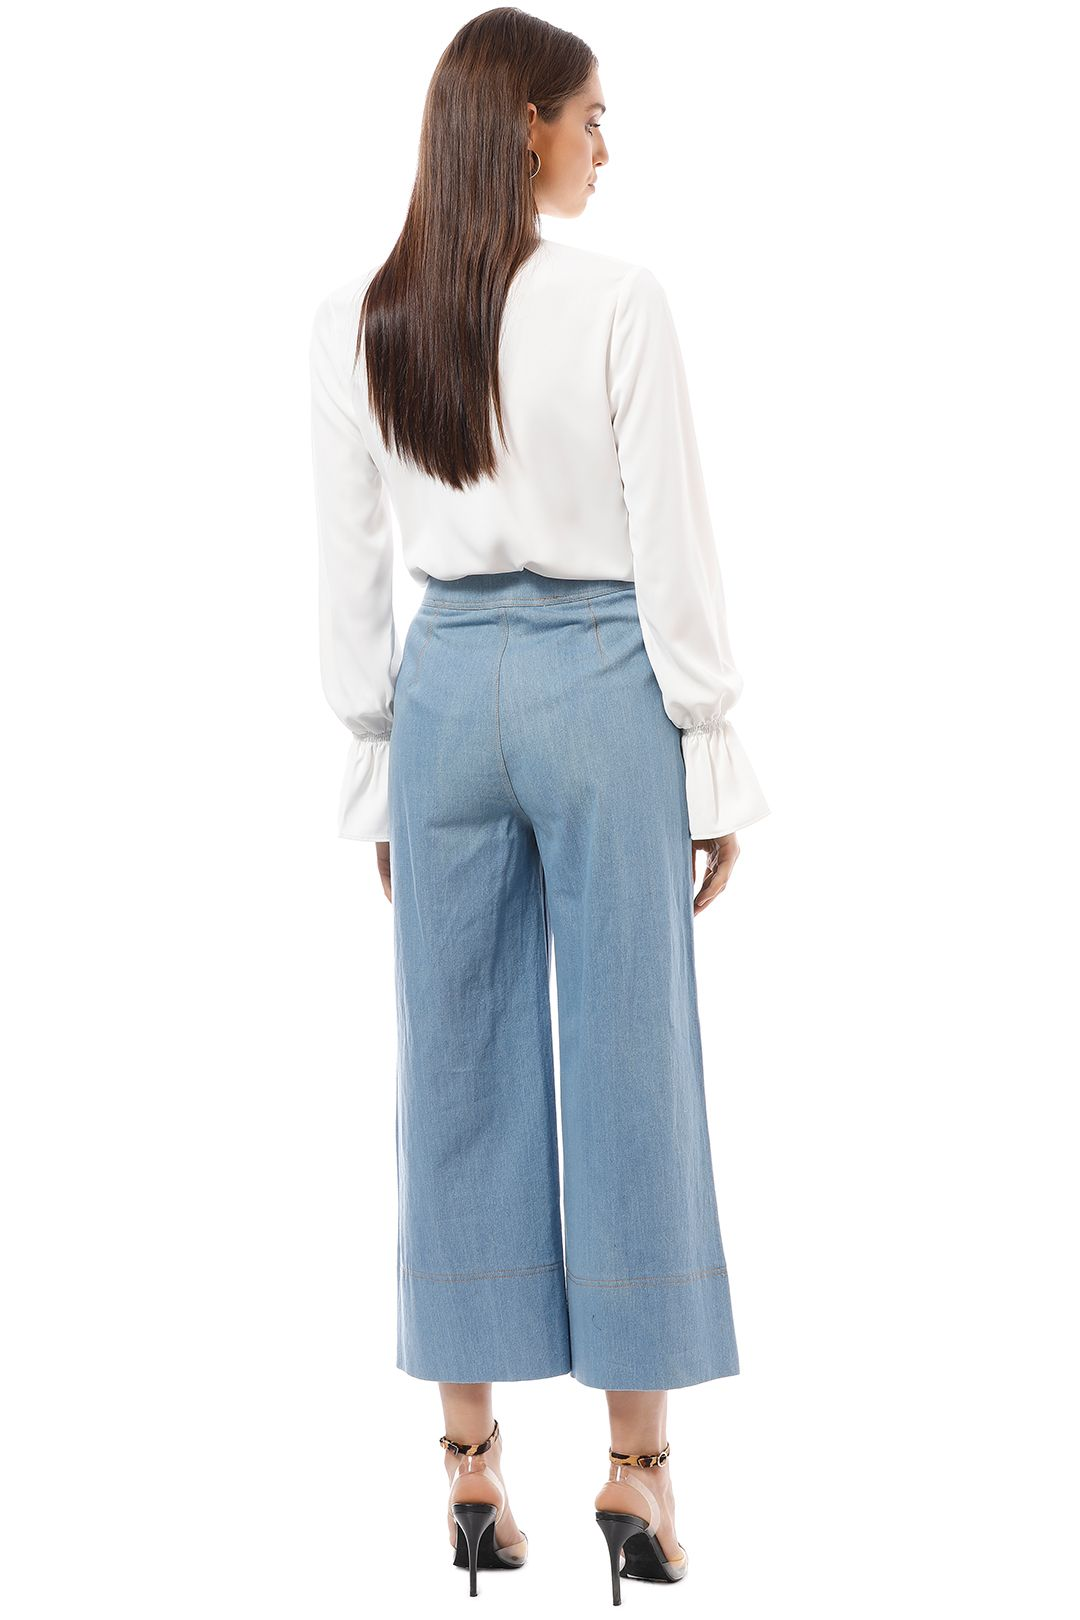 CMEO Collective - Adept Pants - Blue - Back